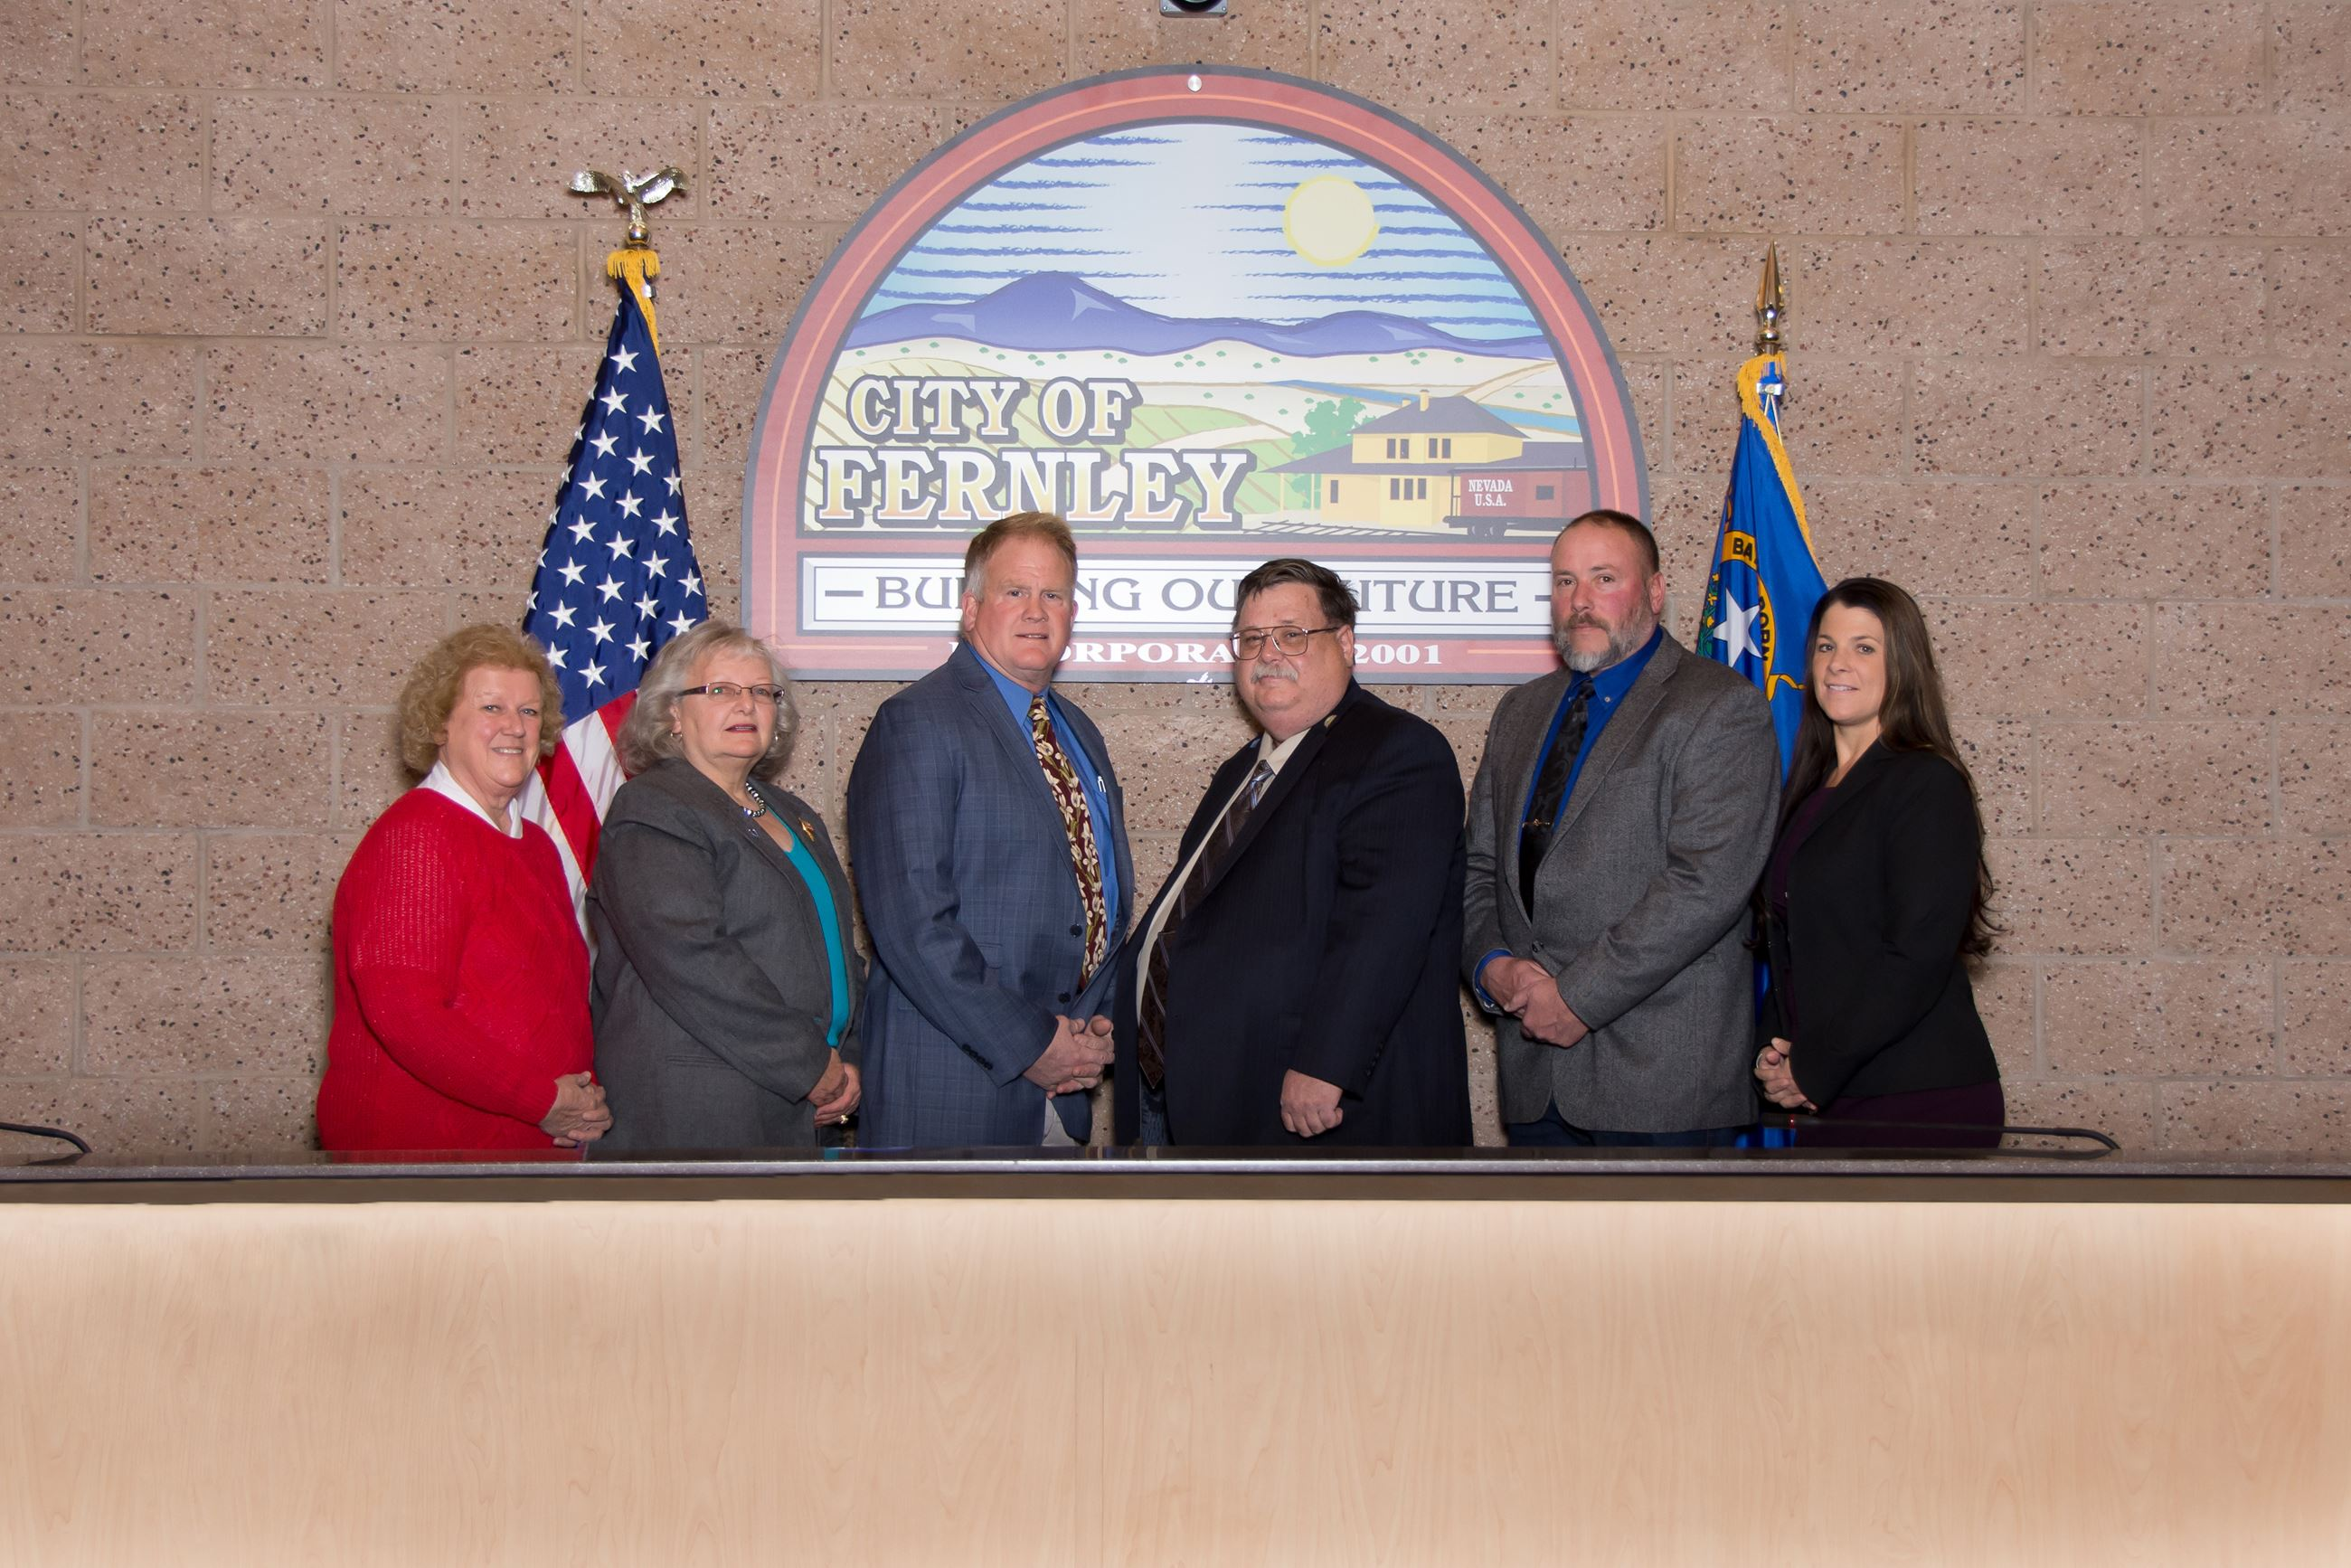 Fernley Mayor & Councilmembers